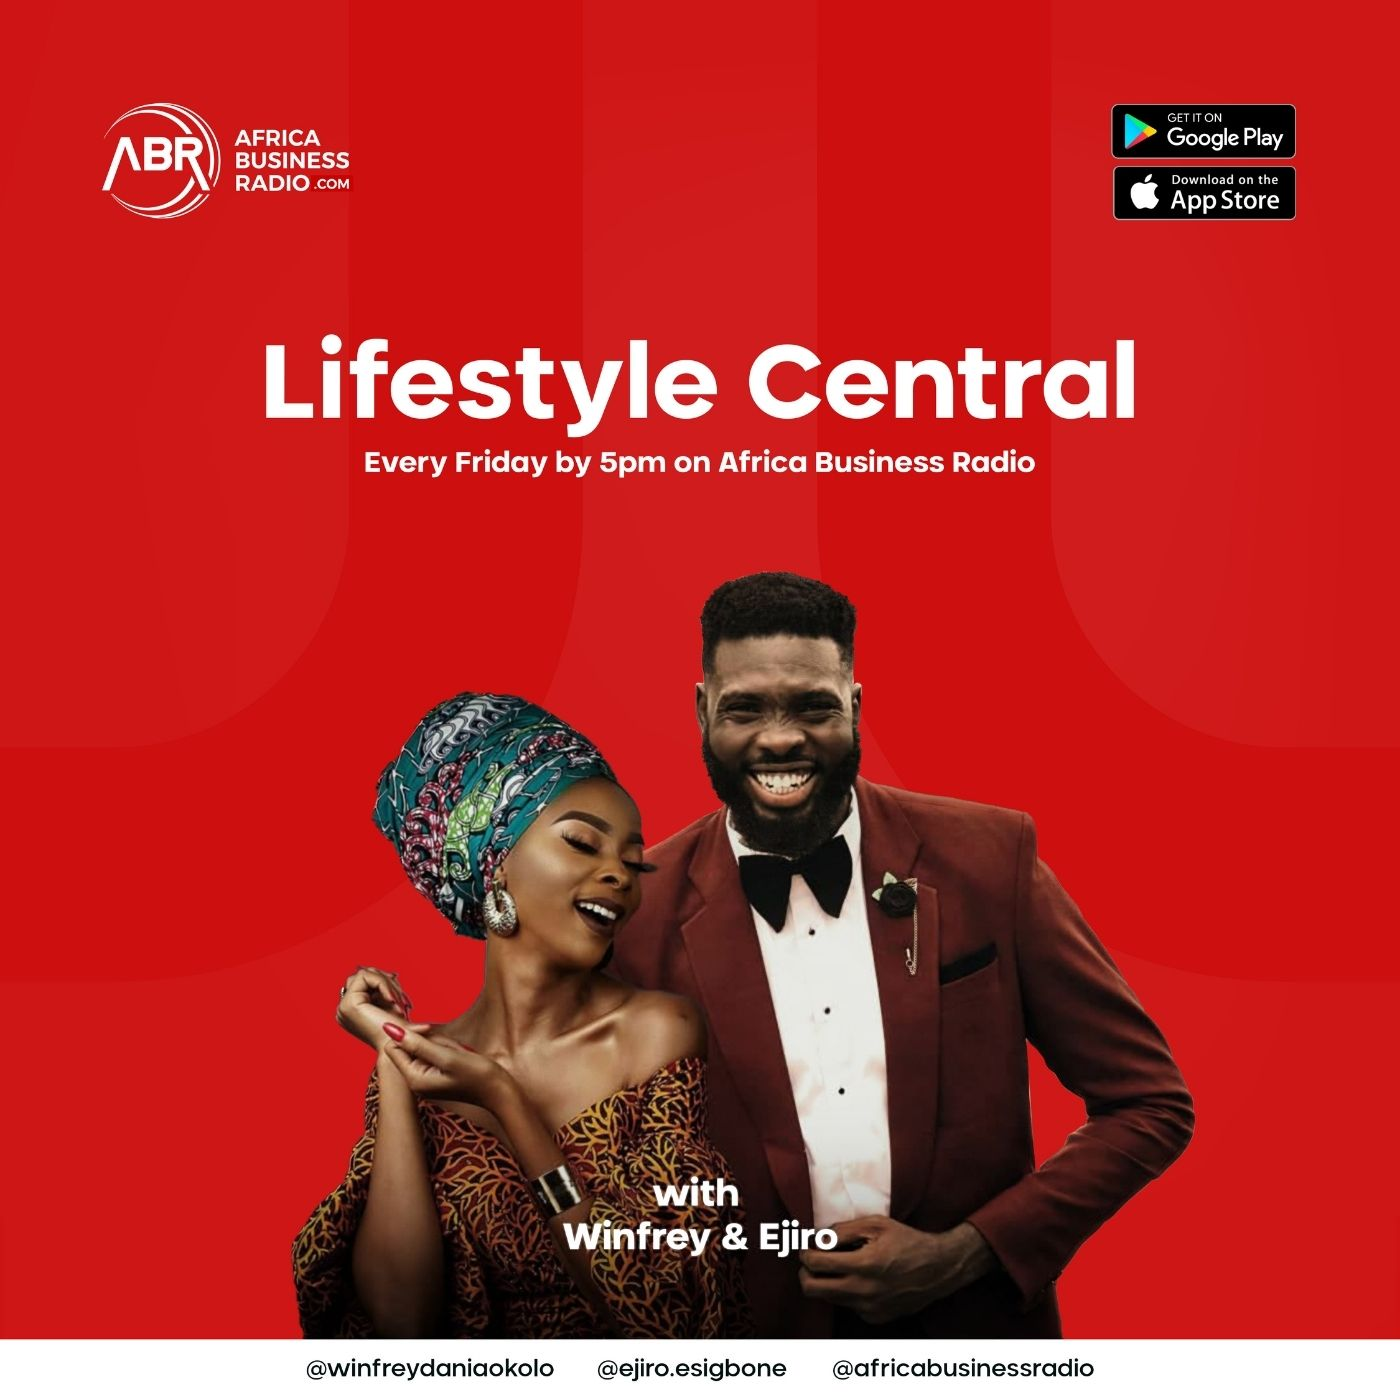 Lifestyle Central